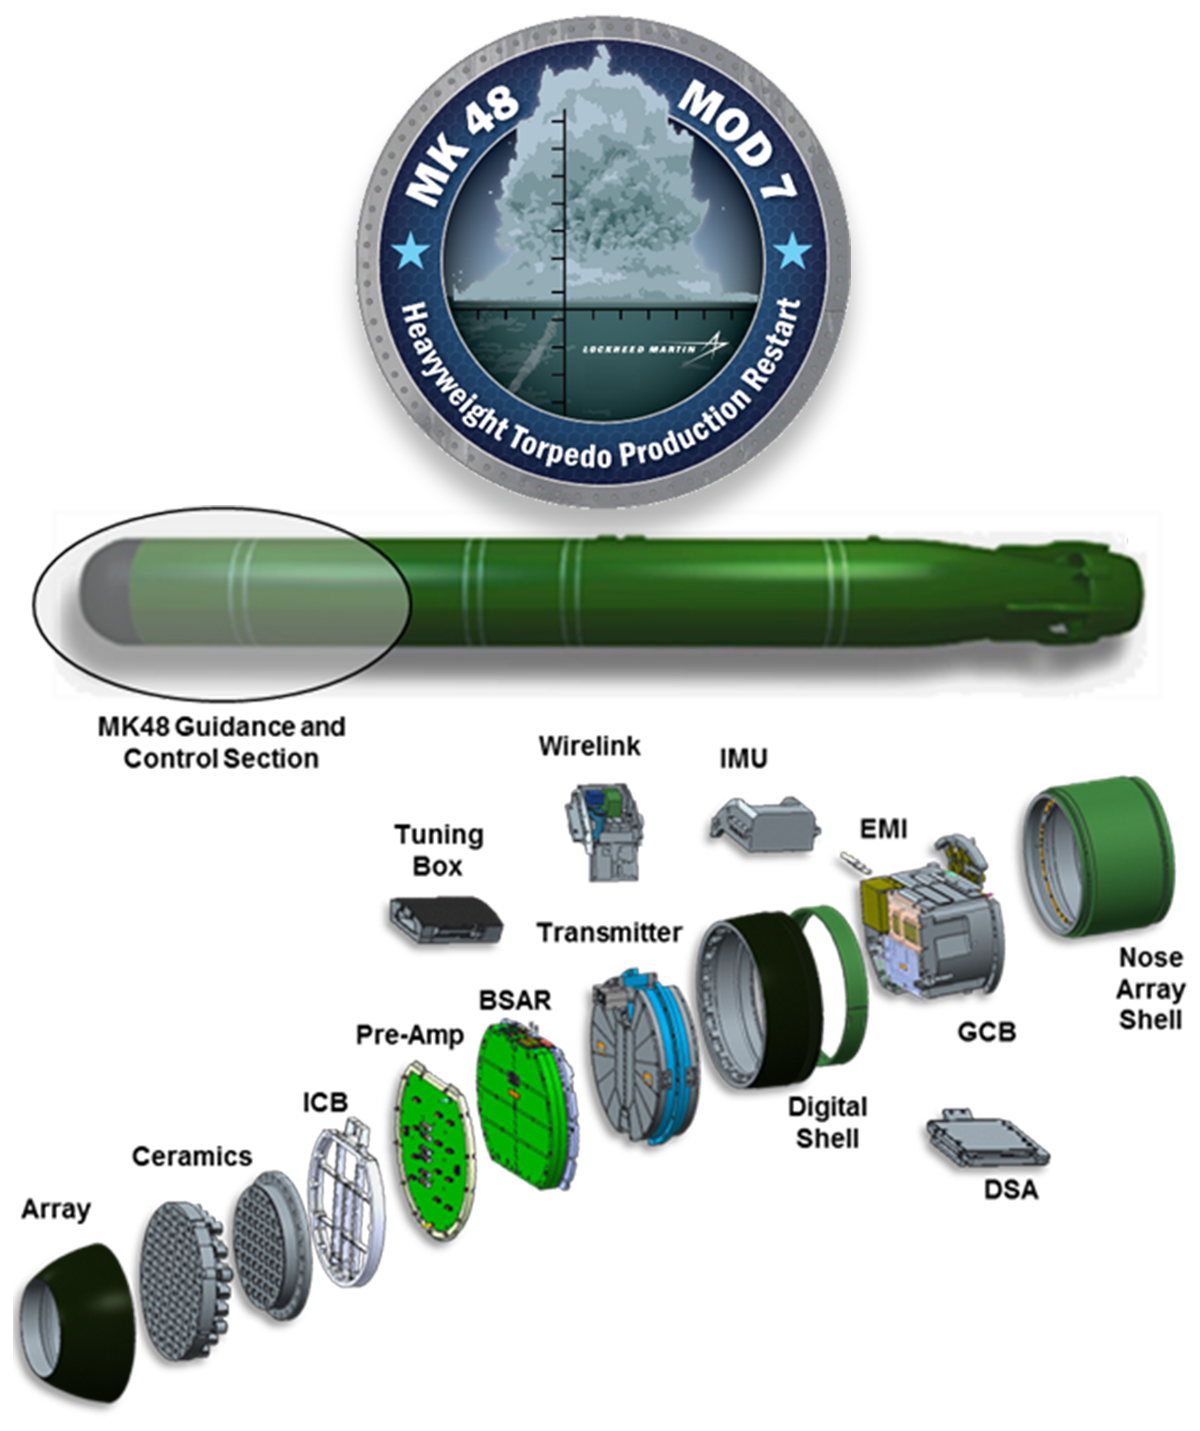 The Inside Track On Rapid Products Of Fitness: MK 48 Mod 7 Common Broadband Advanced Sonar System (CBASS